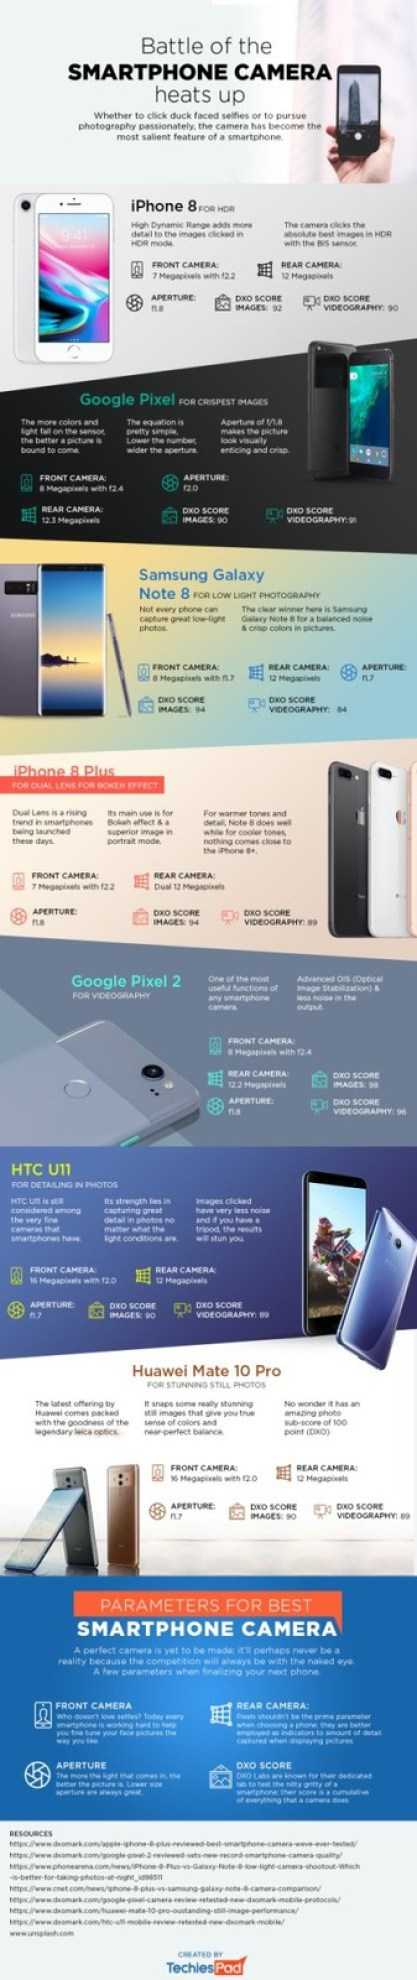 Battle of the smartphone camera hearts up infographic 2